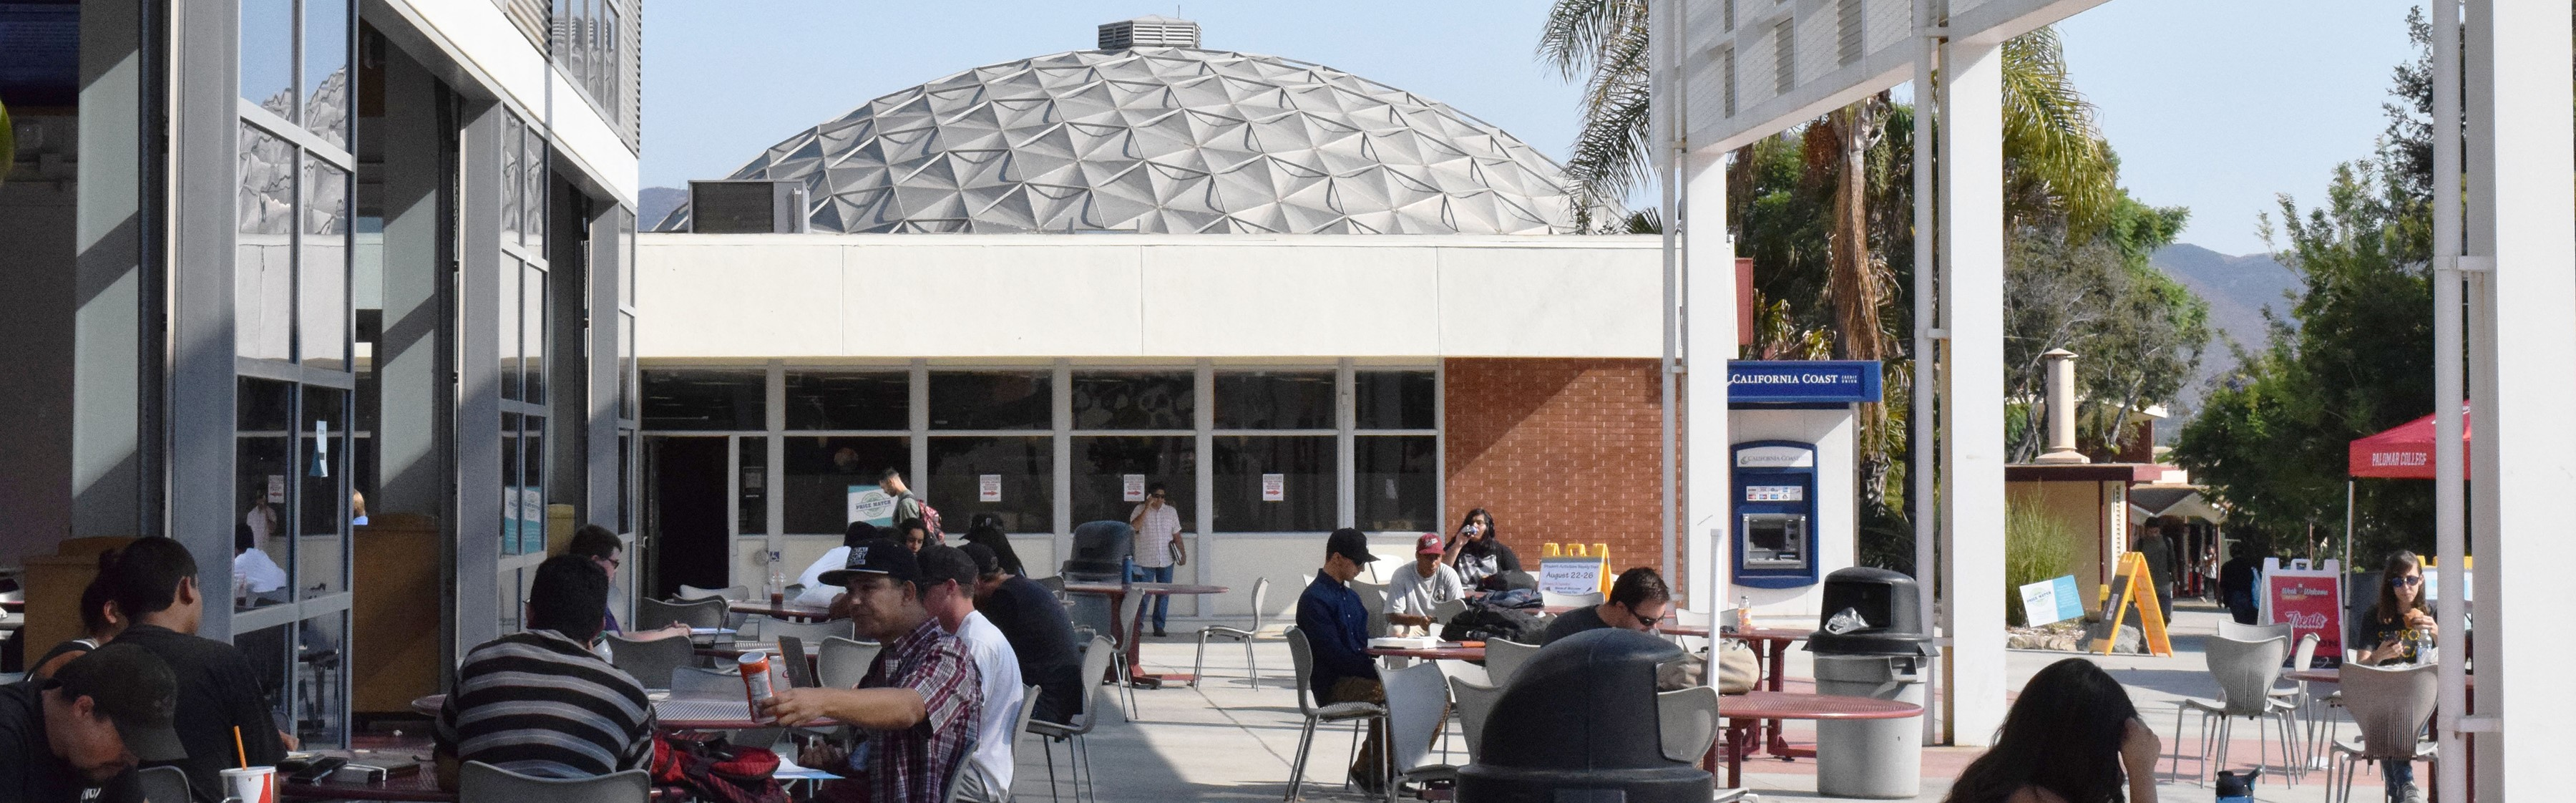 Students study, eat lunch and hang out at the cafeteria. Leila Figueroa The Telescope.